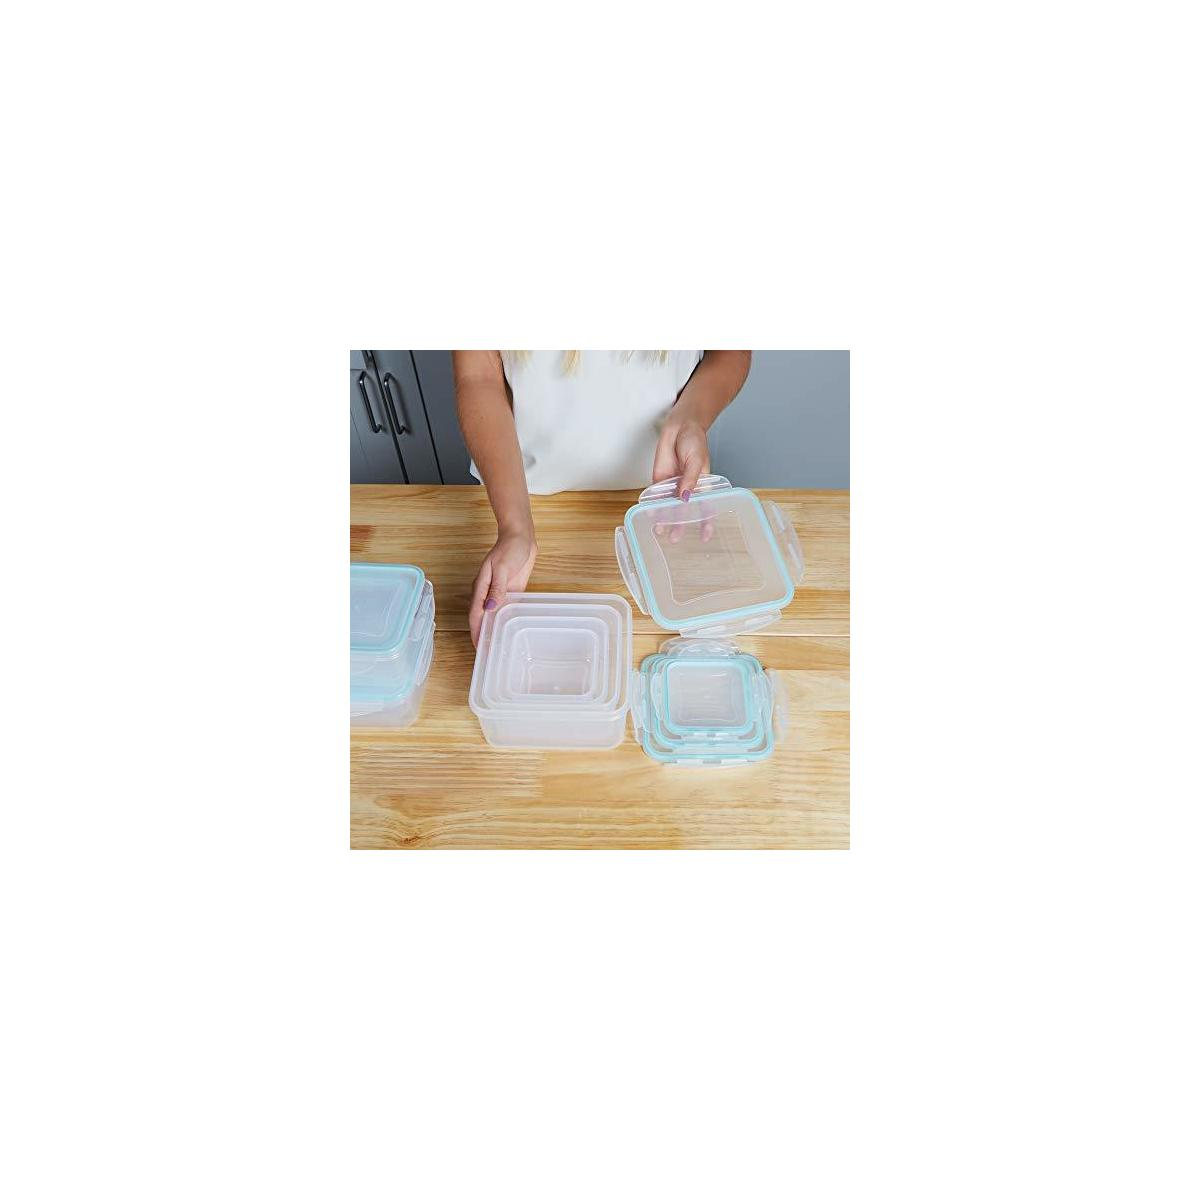 BPA Free Plastic Food Containers with Lids - Airtight & Leakproof